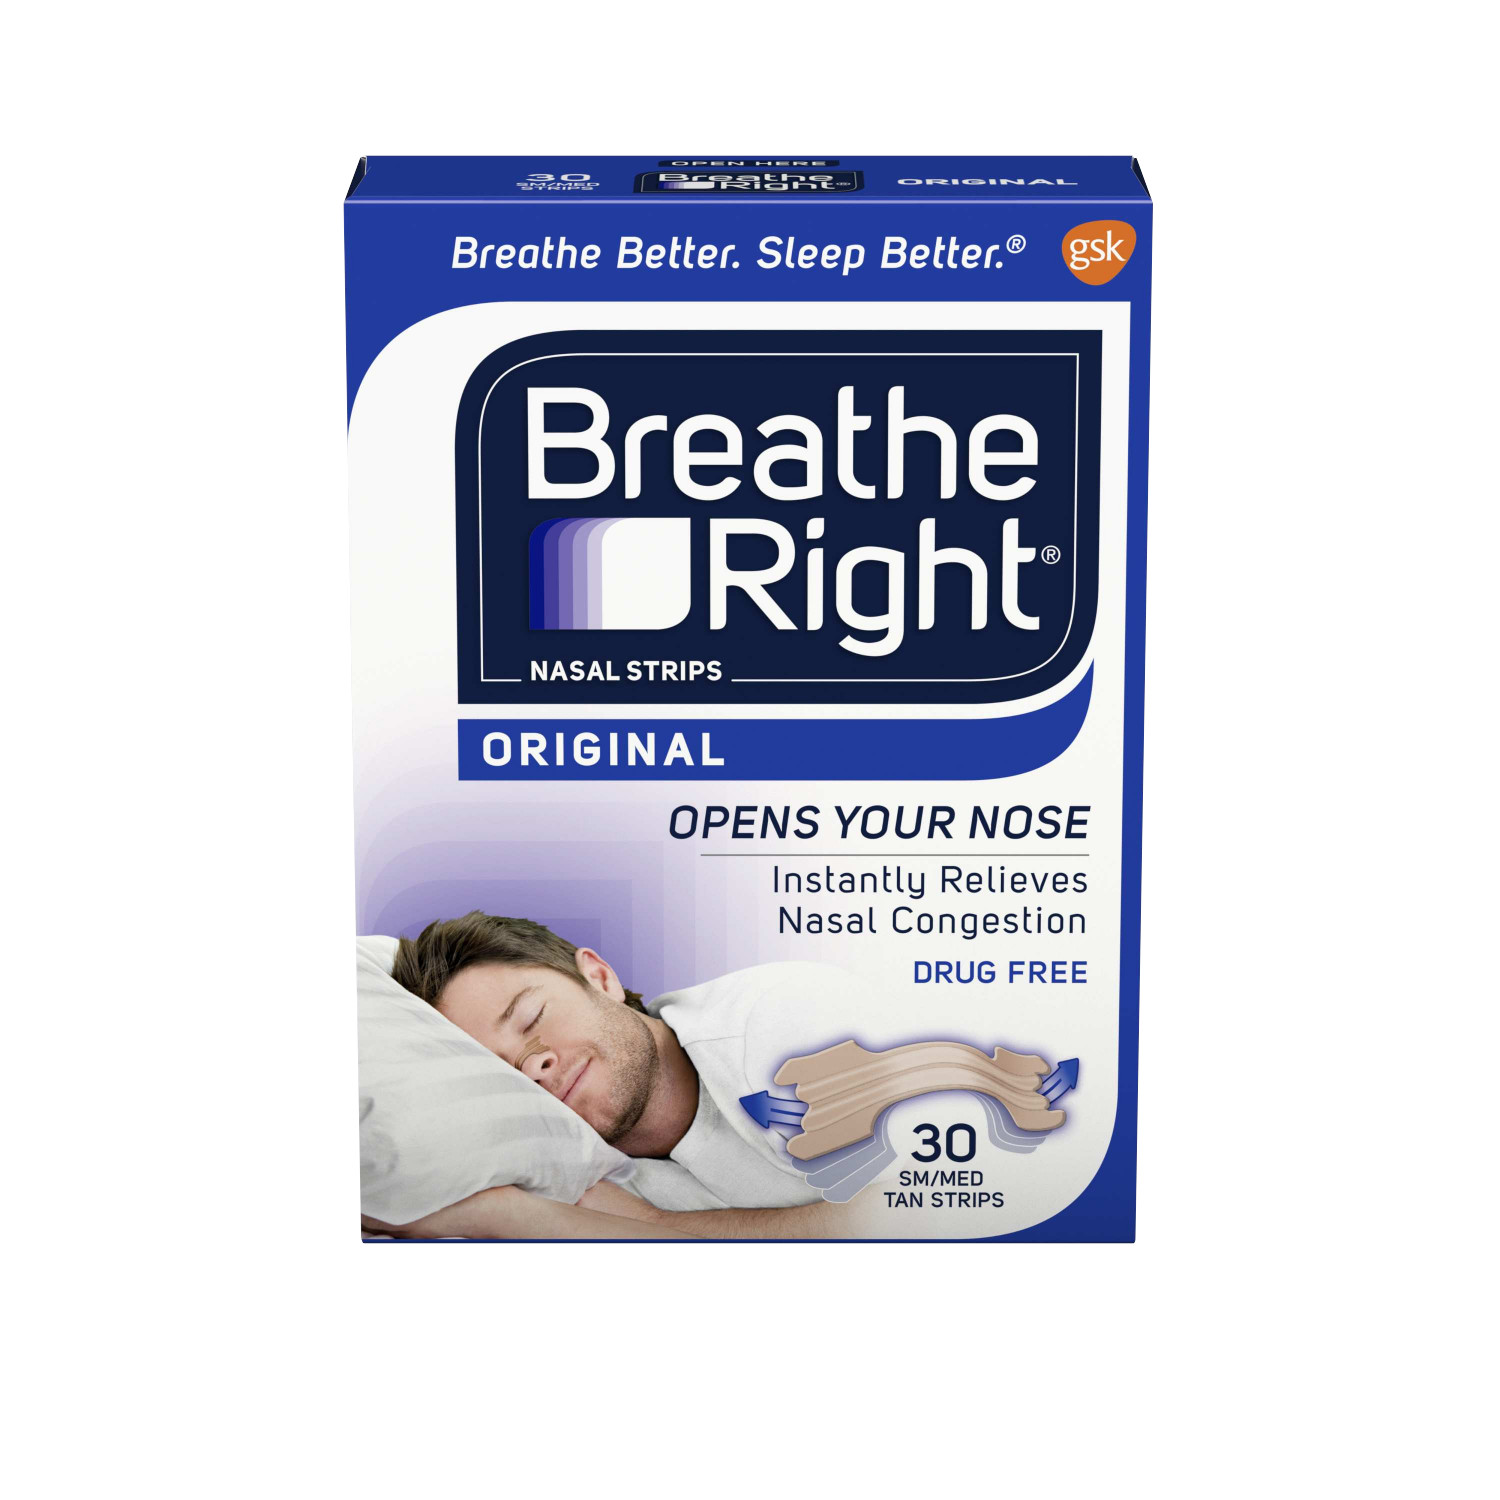 Breathe Right Original Tan Small/Medium Drug-Free Nasal Strips for Nasal Congestion Relief, 30 count